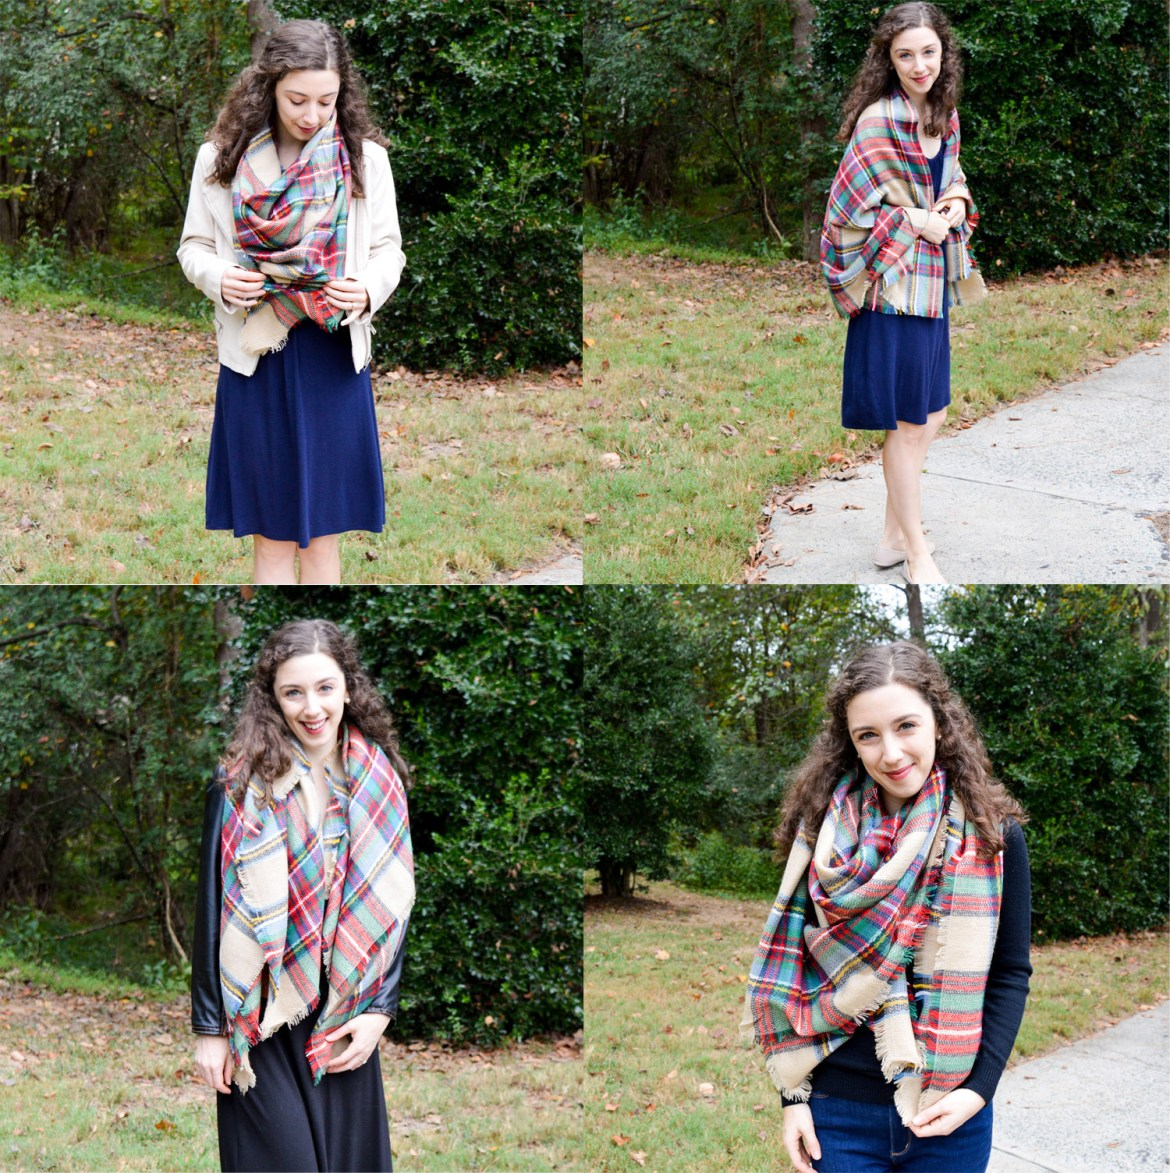 How to Wear a Blanket Scarf | Fashion Inspiration on Hunting for Pink Flamingos